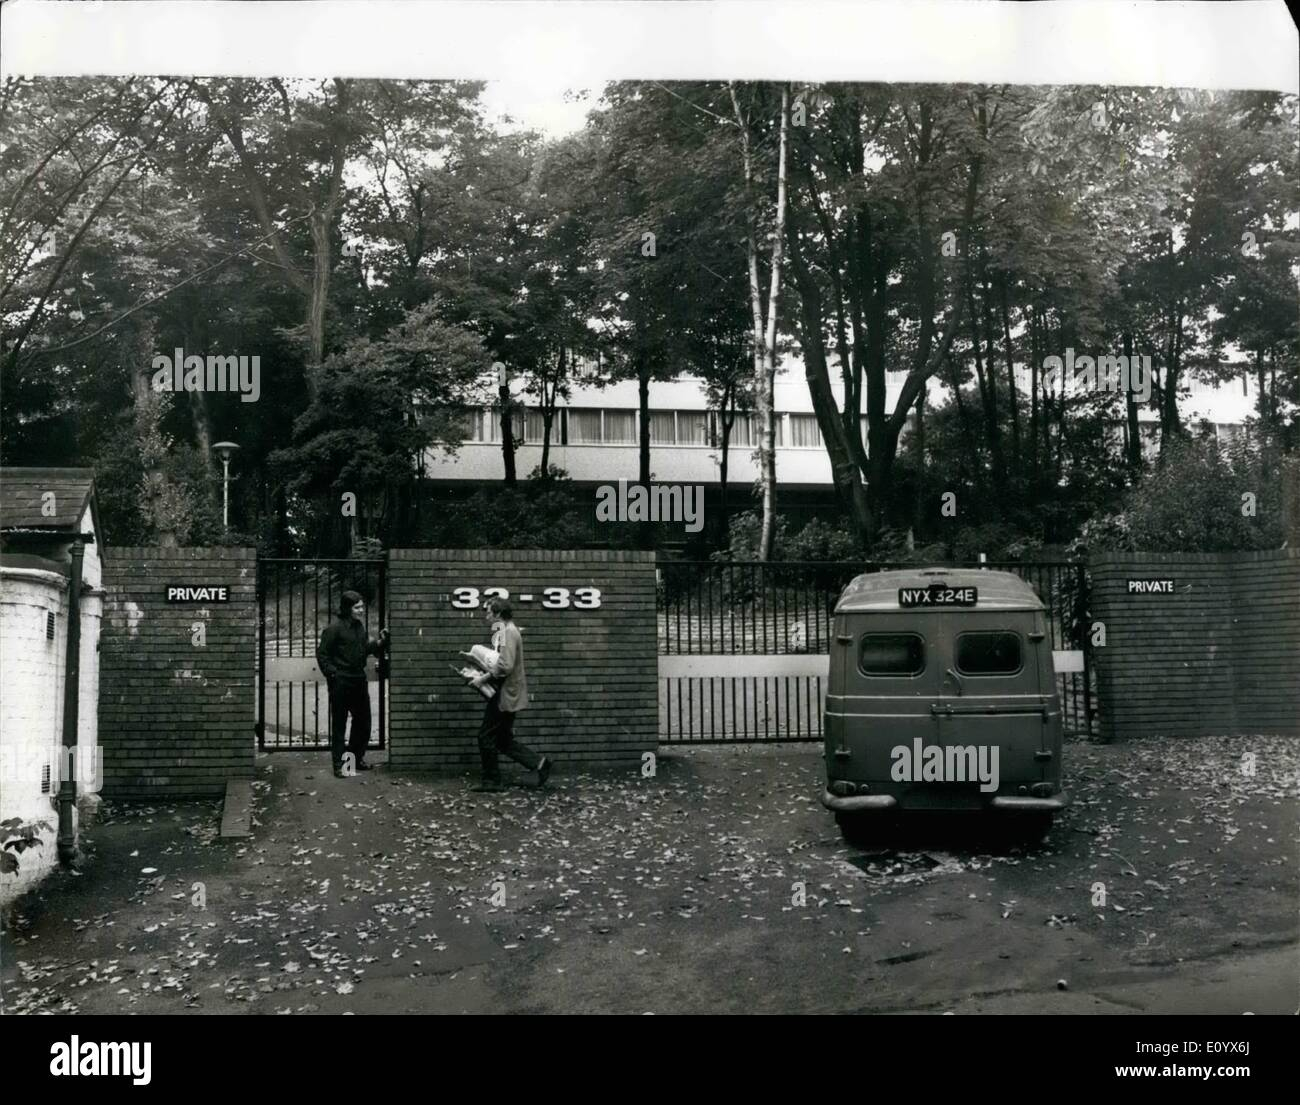 Sep. 09, 1971 - Britain Expeis 105 Russians After Kgb Defector Exposes Soviet Spy Net In London; Britain expelled 90 Russians diplomats and officials yesterday for spying, forbade the return of 15 others temporarily out of the country, and put a limit on the numbers of officials the Soviet Government may station in London. The drastic action came after t he defection of a senior agent of the KGB intelligence service earlier this month and his disclosures of plans to infiltrate saboteurs and more spies into Britain . The agent has not been named - Stock Image